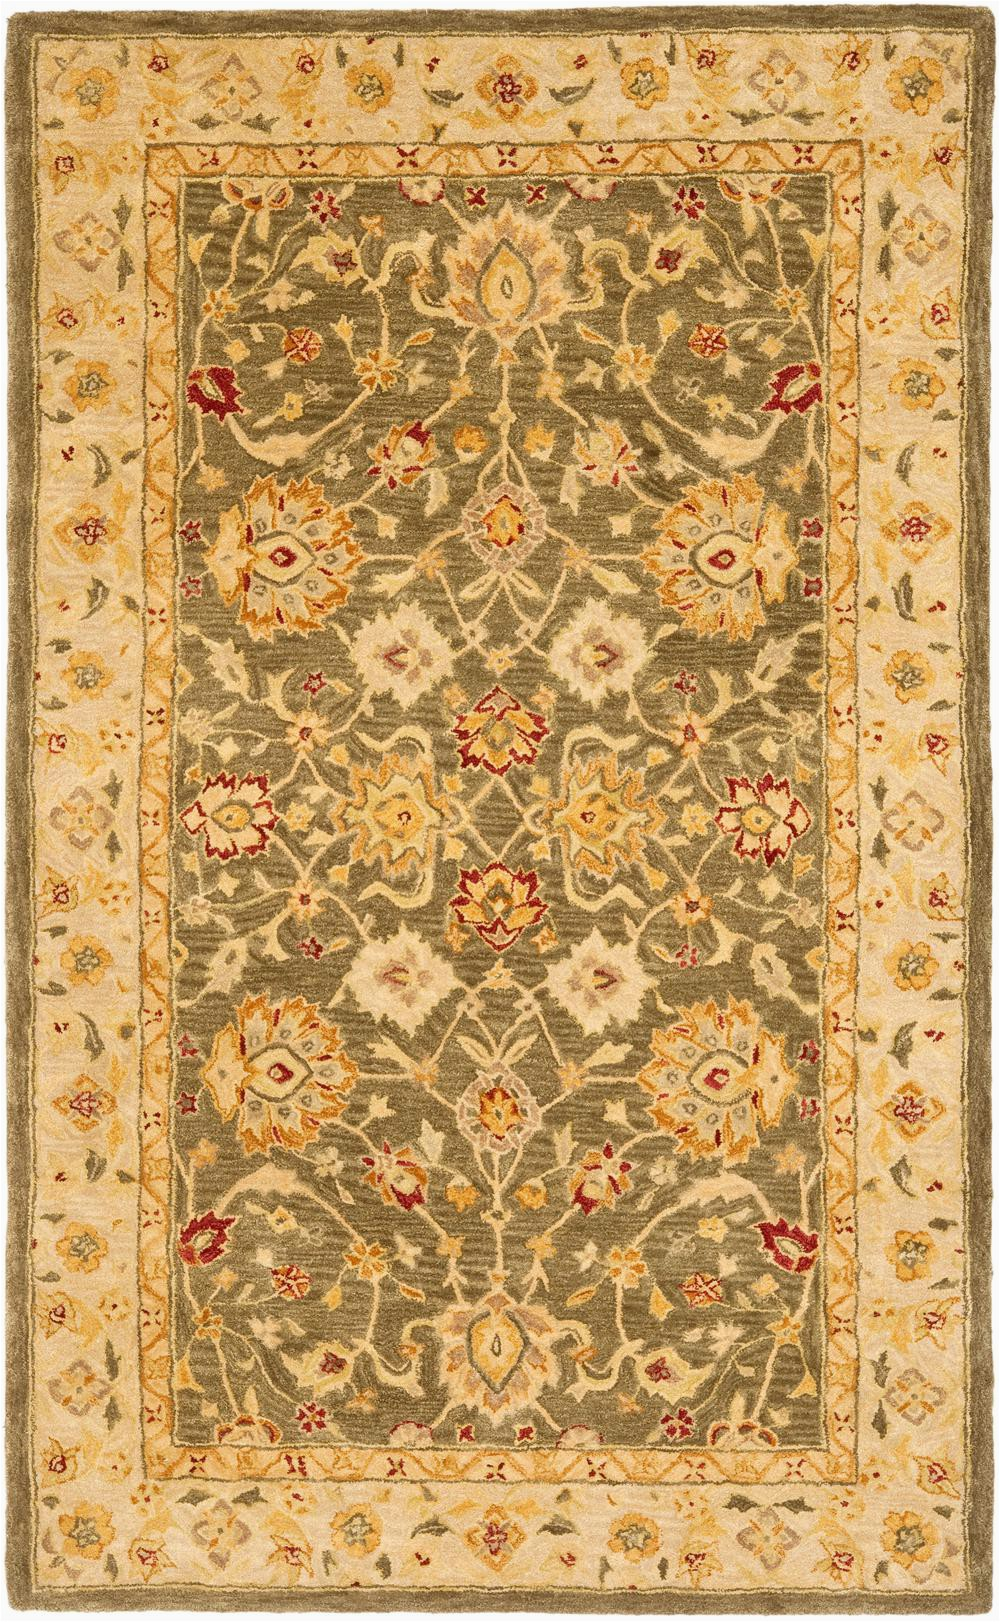 Safavieh Anatolia AN553A Green and Gold rugs